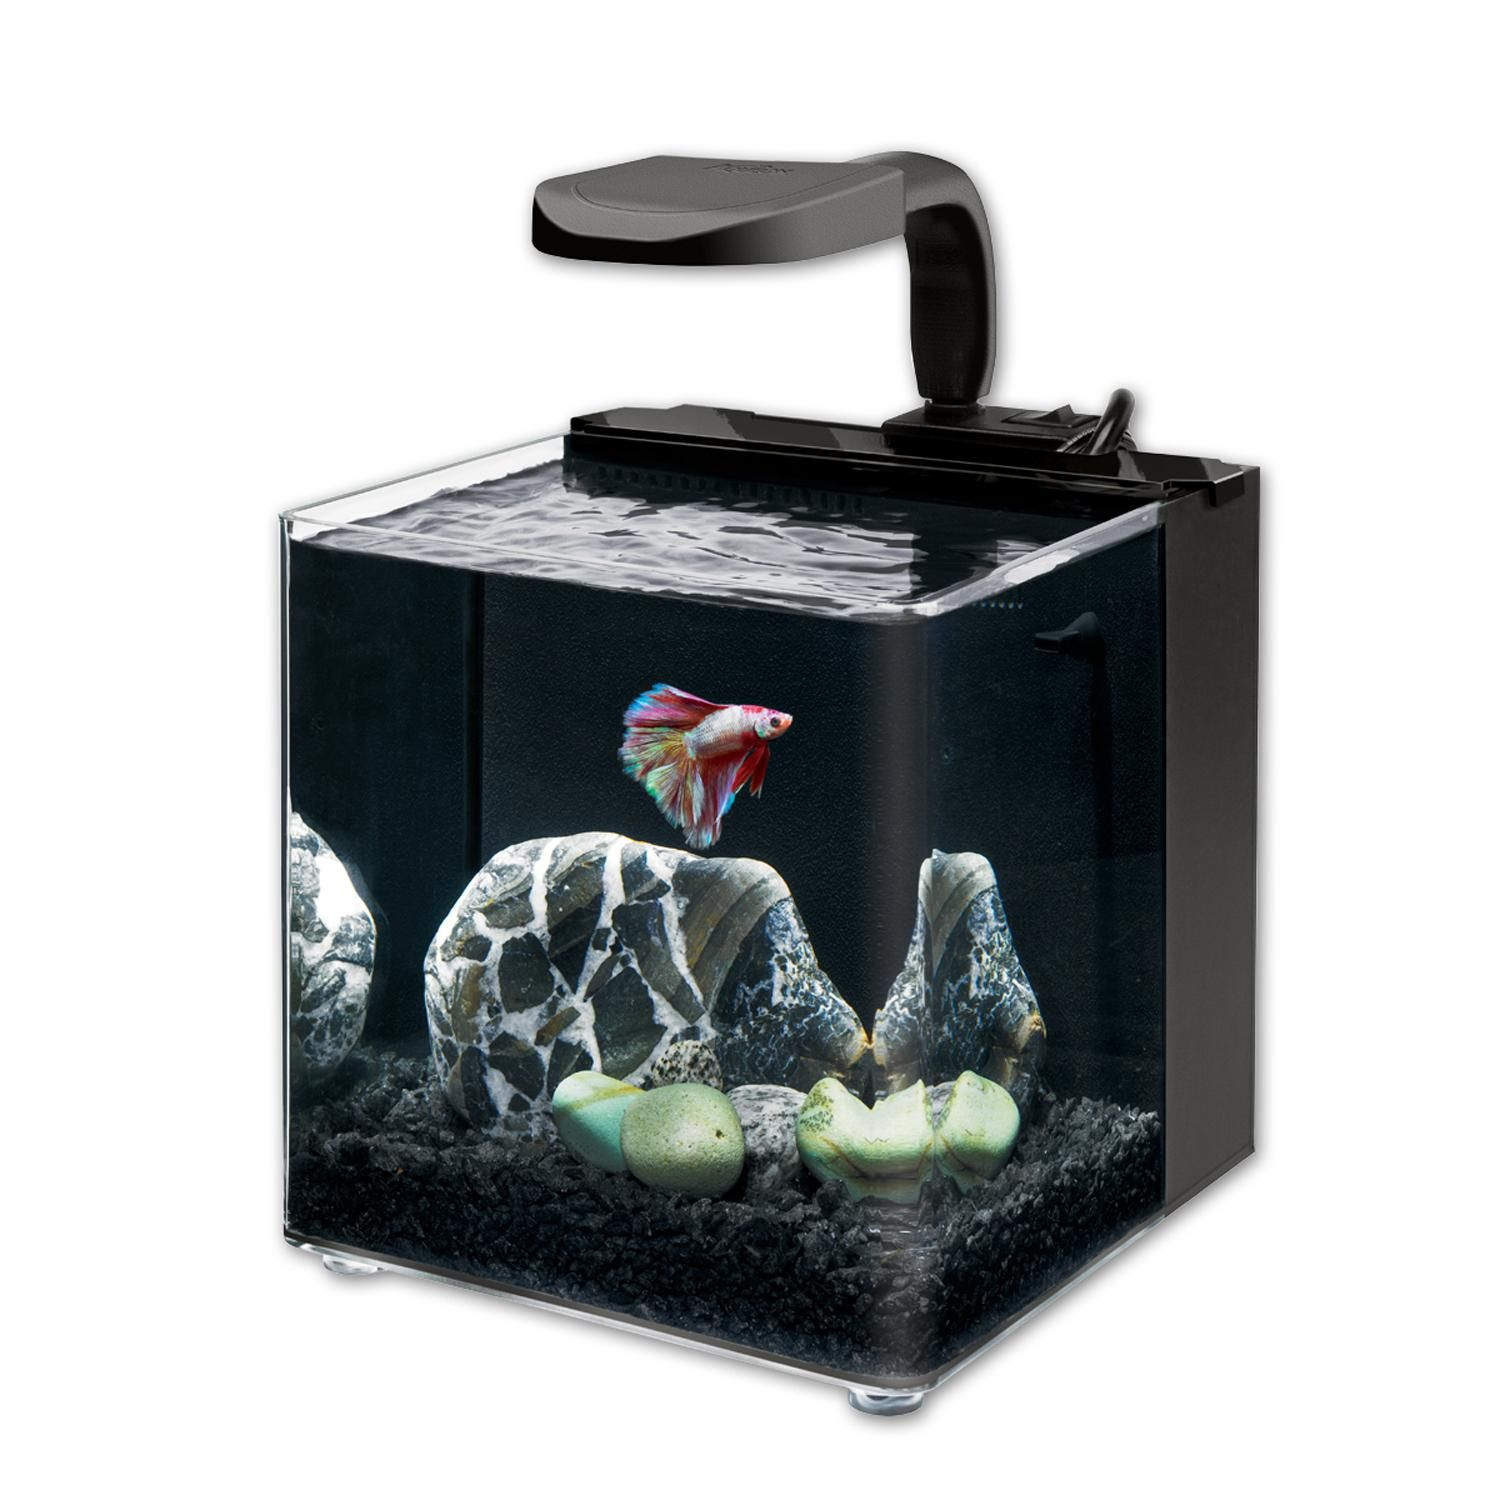 Aqueon evolve led aquarium kit comes in a variety of for 2 gallon betta fish tank